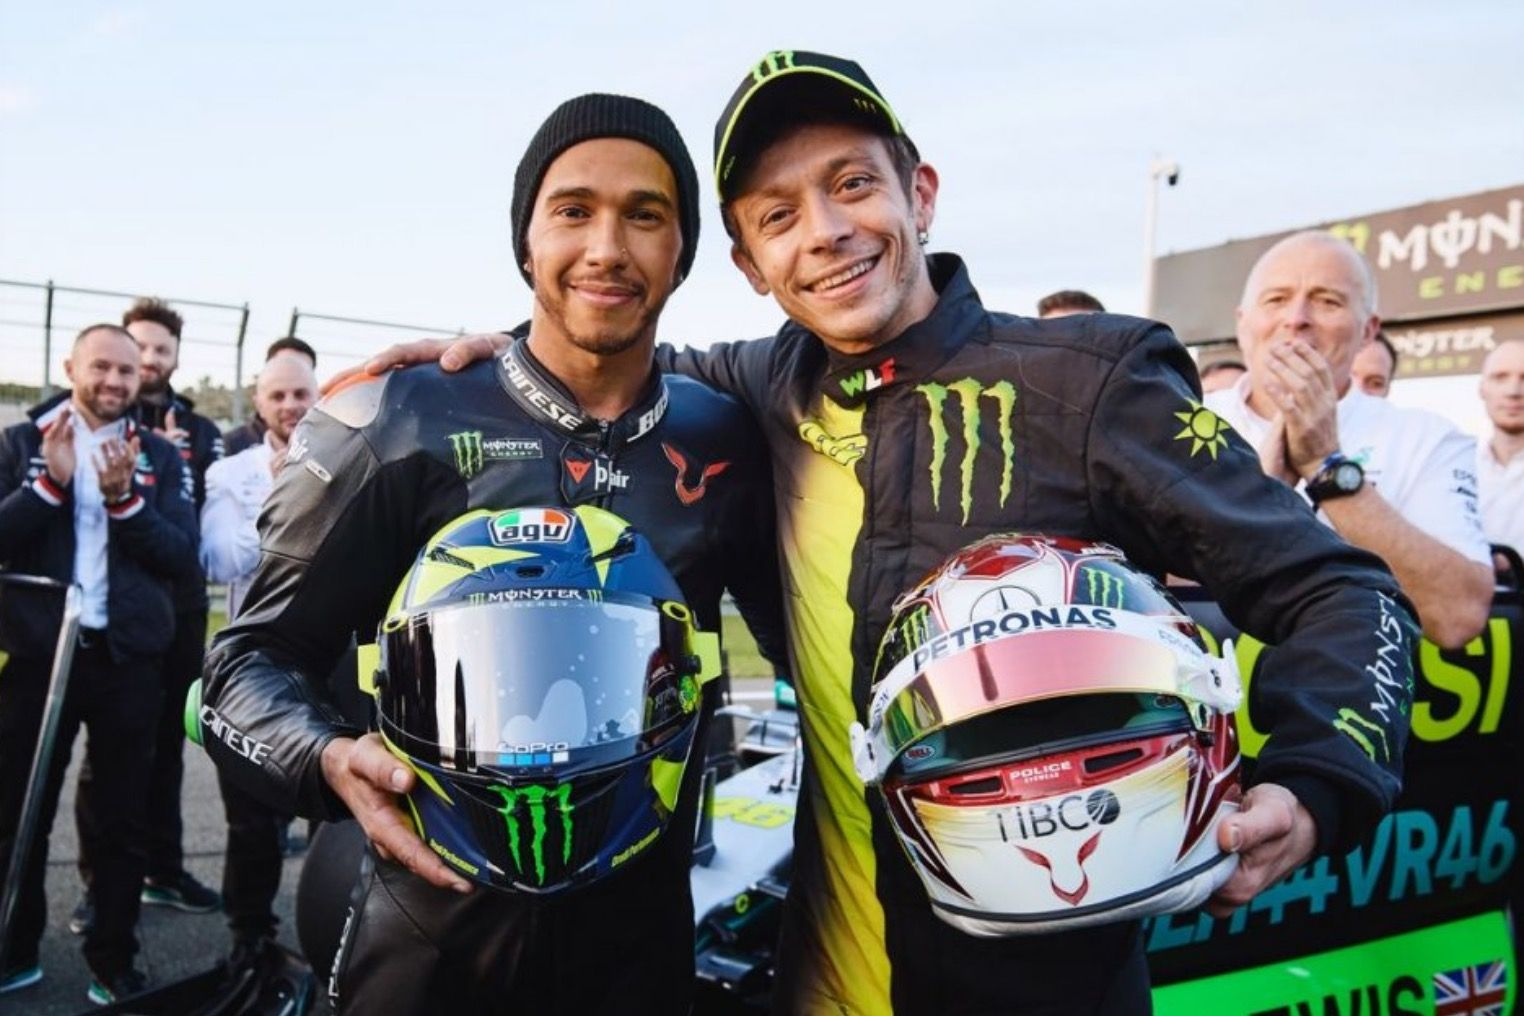 MotoGP, Forbes: Marquez and Rossi out of the Top 100 highest paid